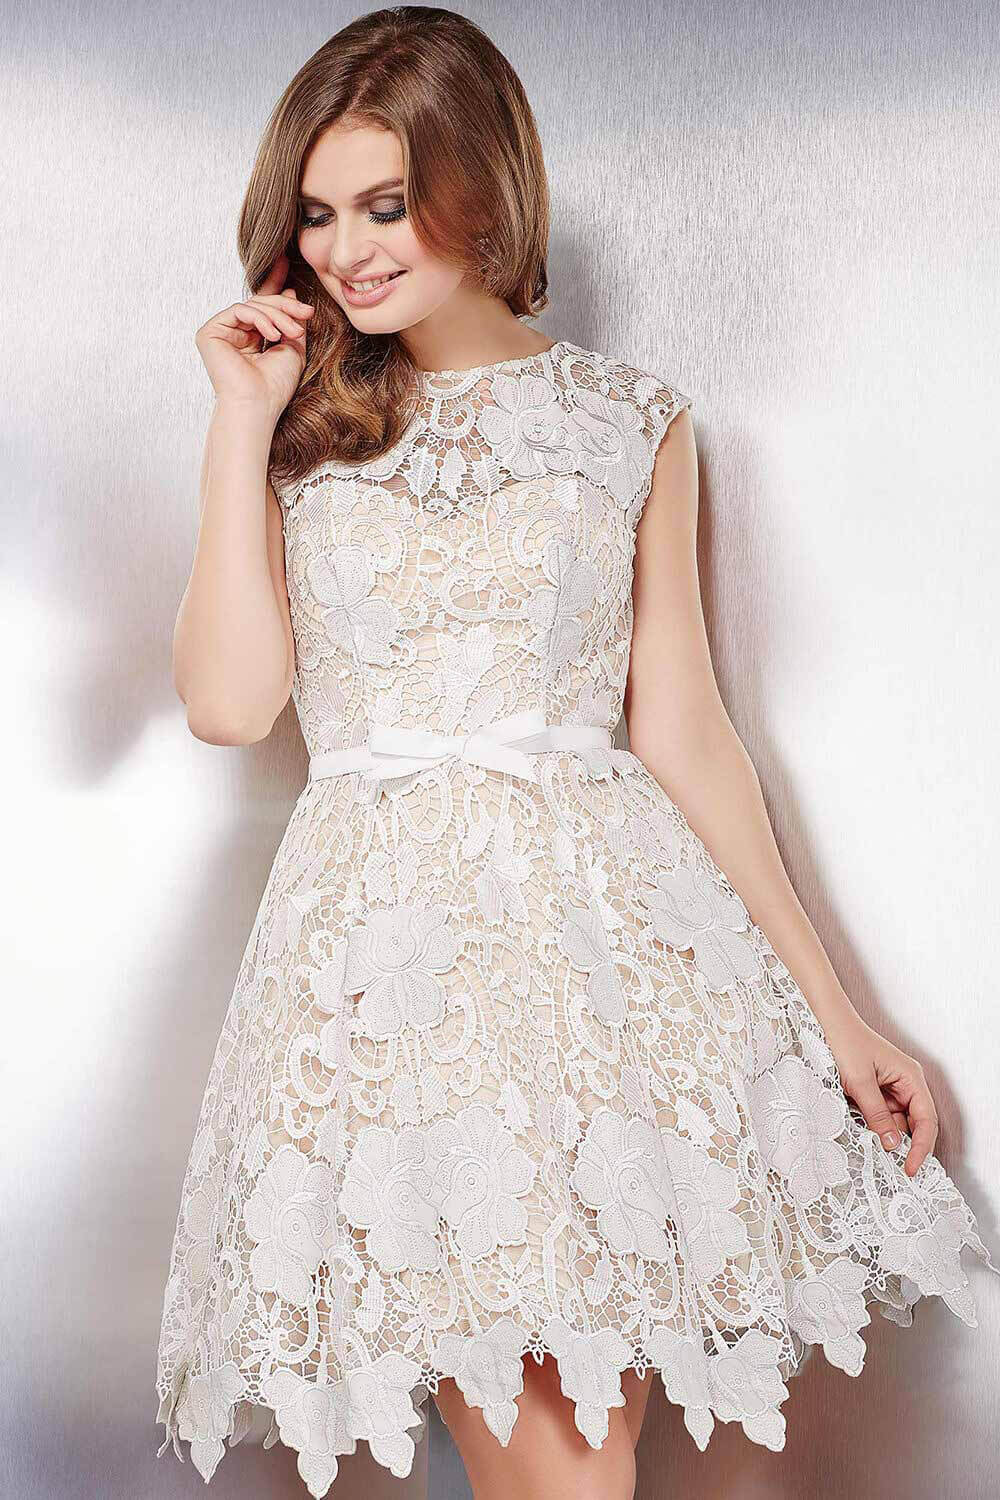 Wedding White Lace Short Dress white lace short dress photo album fashion trends and models collection pictures models